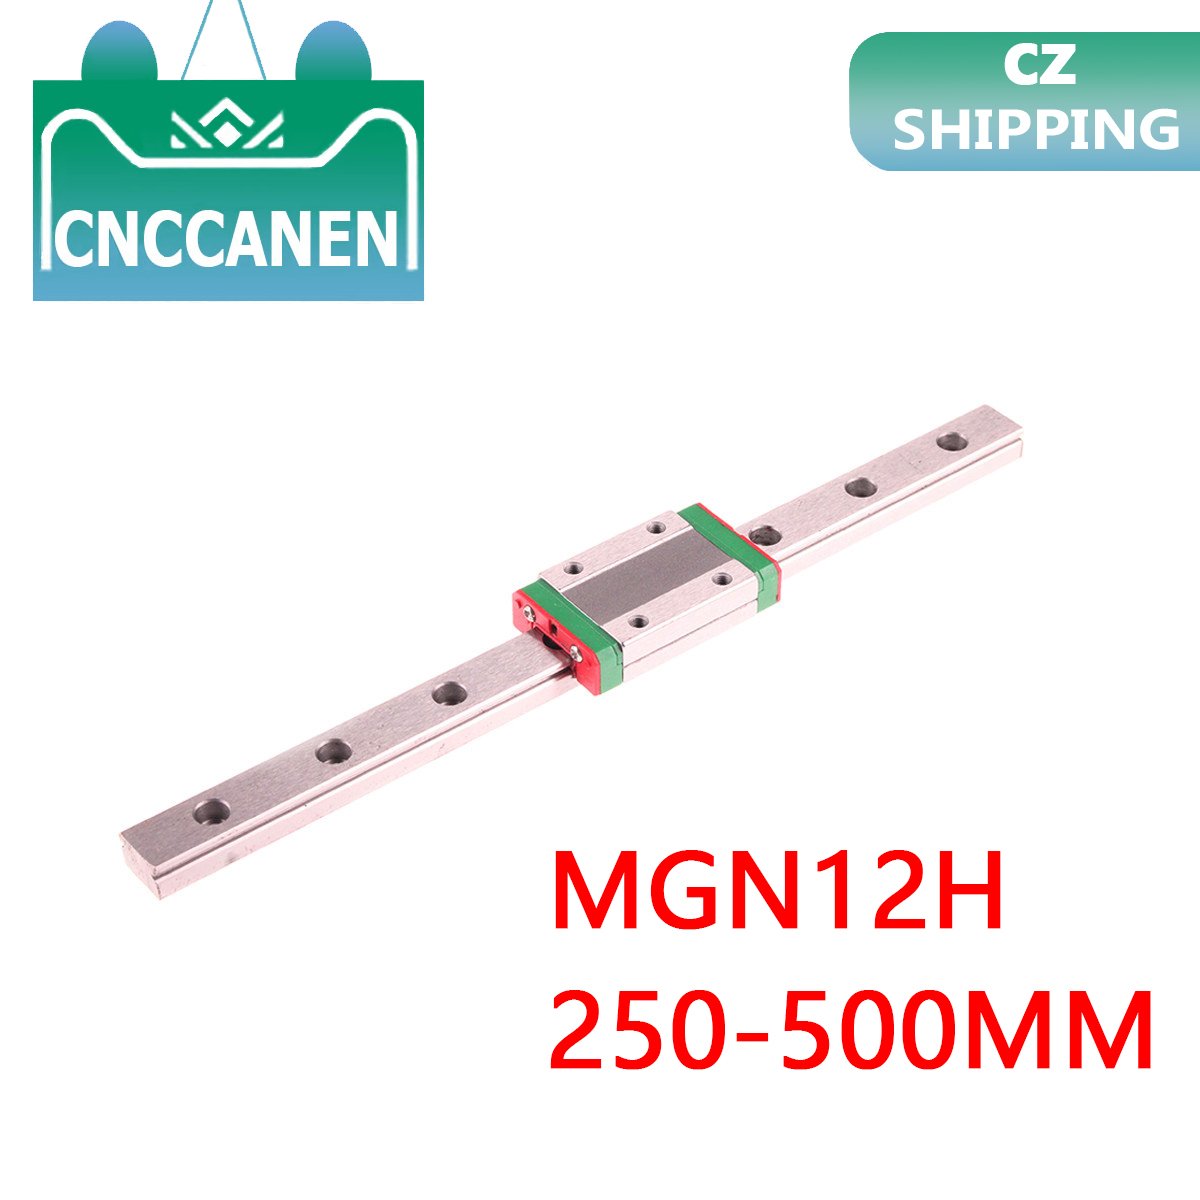 MGN12 Miniature Linear Rail Slide 250/300/350/400/450/500mm 1PC MGN Linear Guide + 1PCS MGN12H Carriage Block For CNC 3D Printer